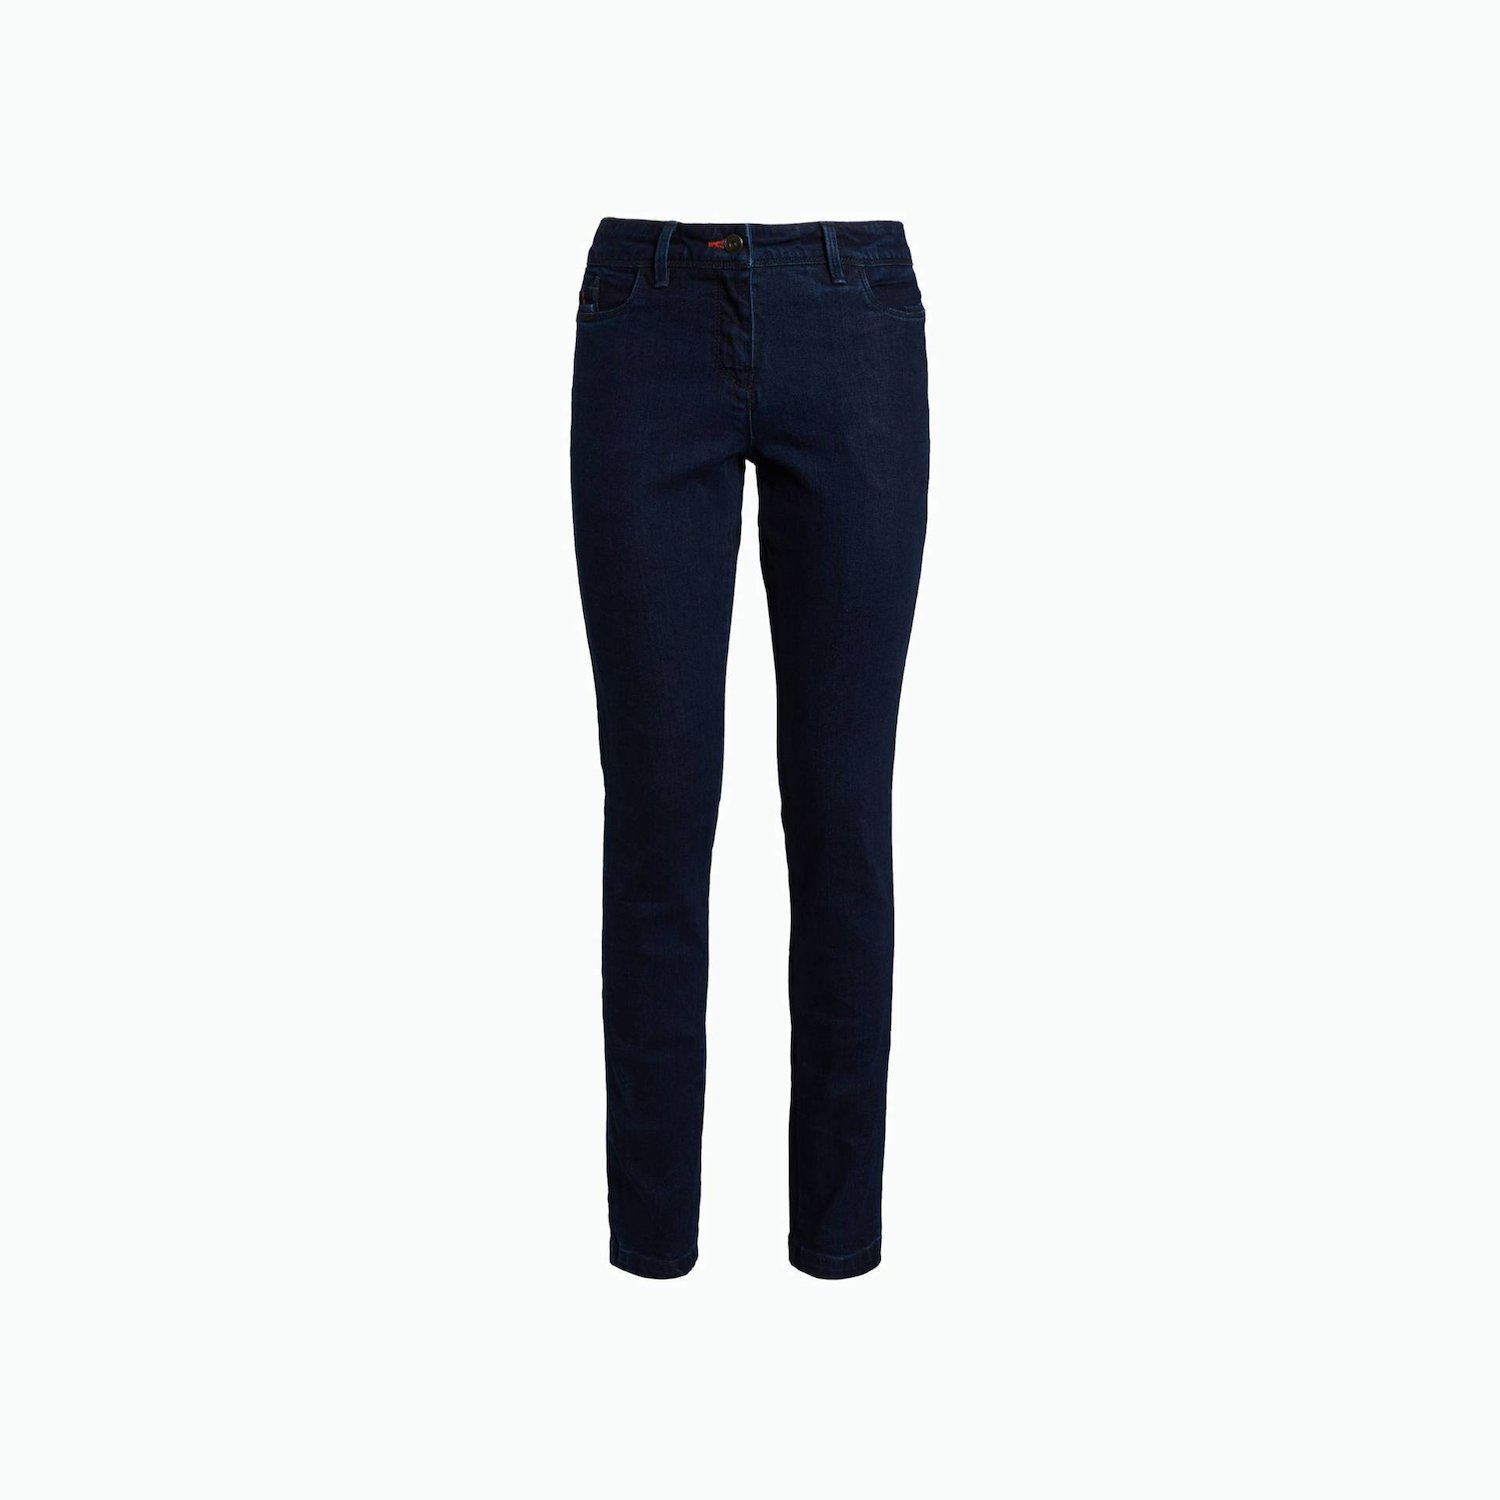 B200 Trousers - Dark denim